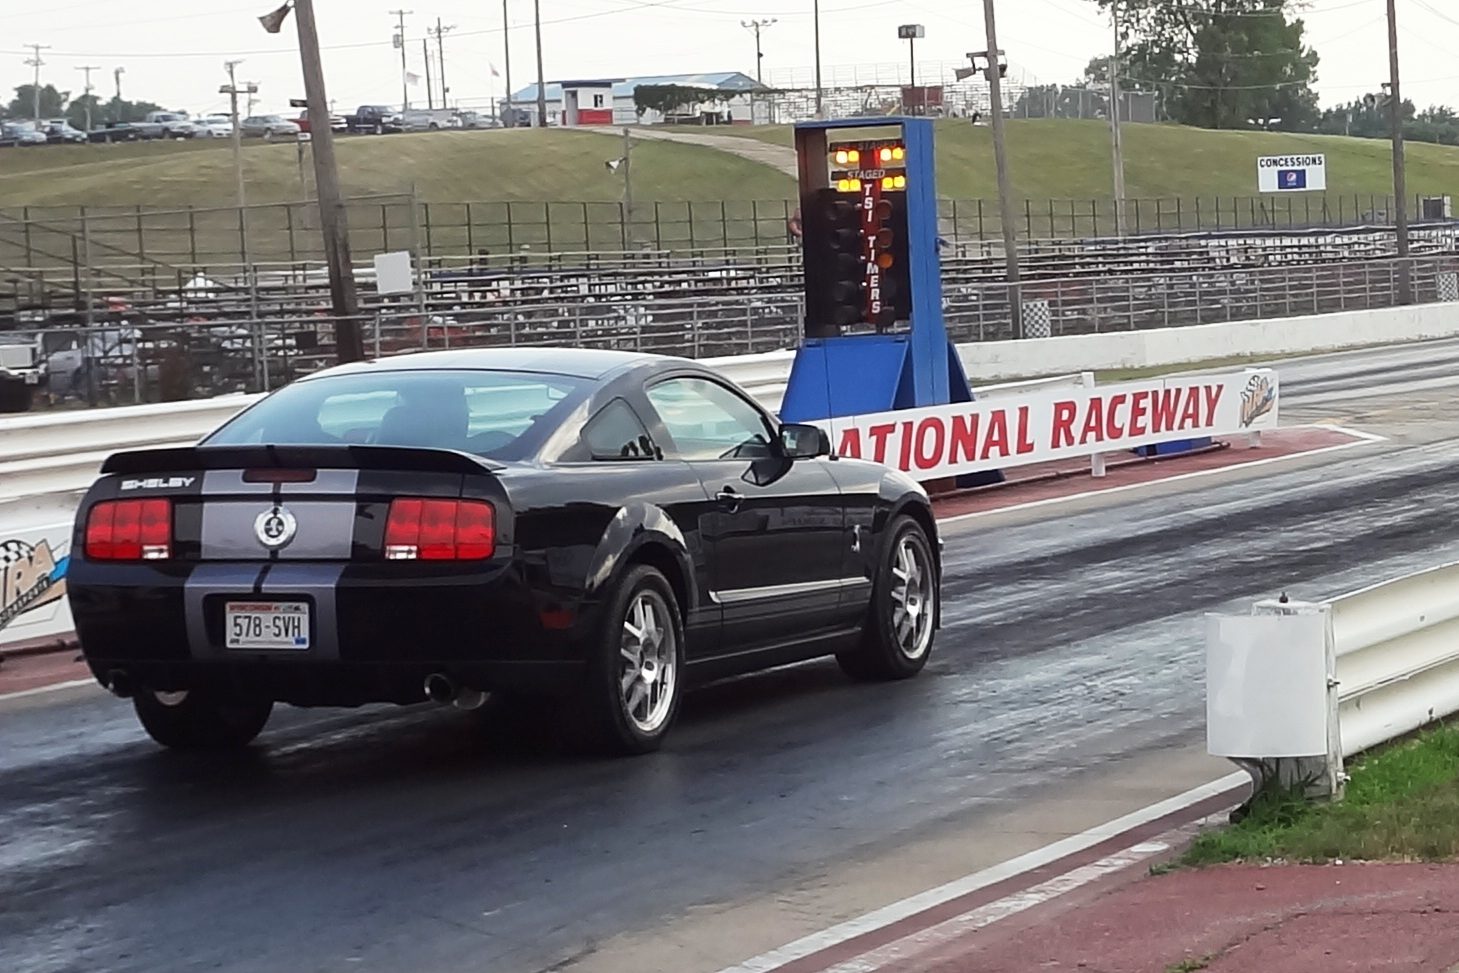 2007 Ford Mustang Shelby-GT500 1/4 mile Drag Racing ...